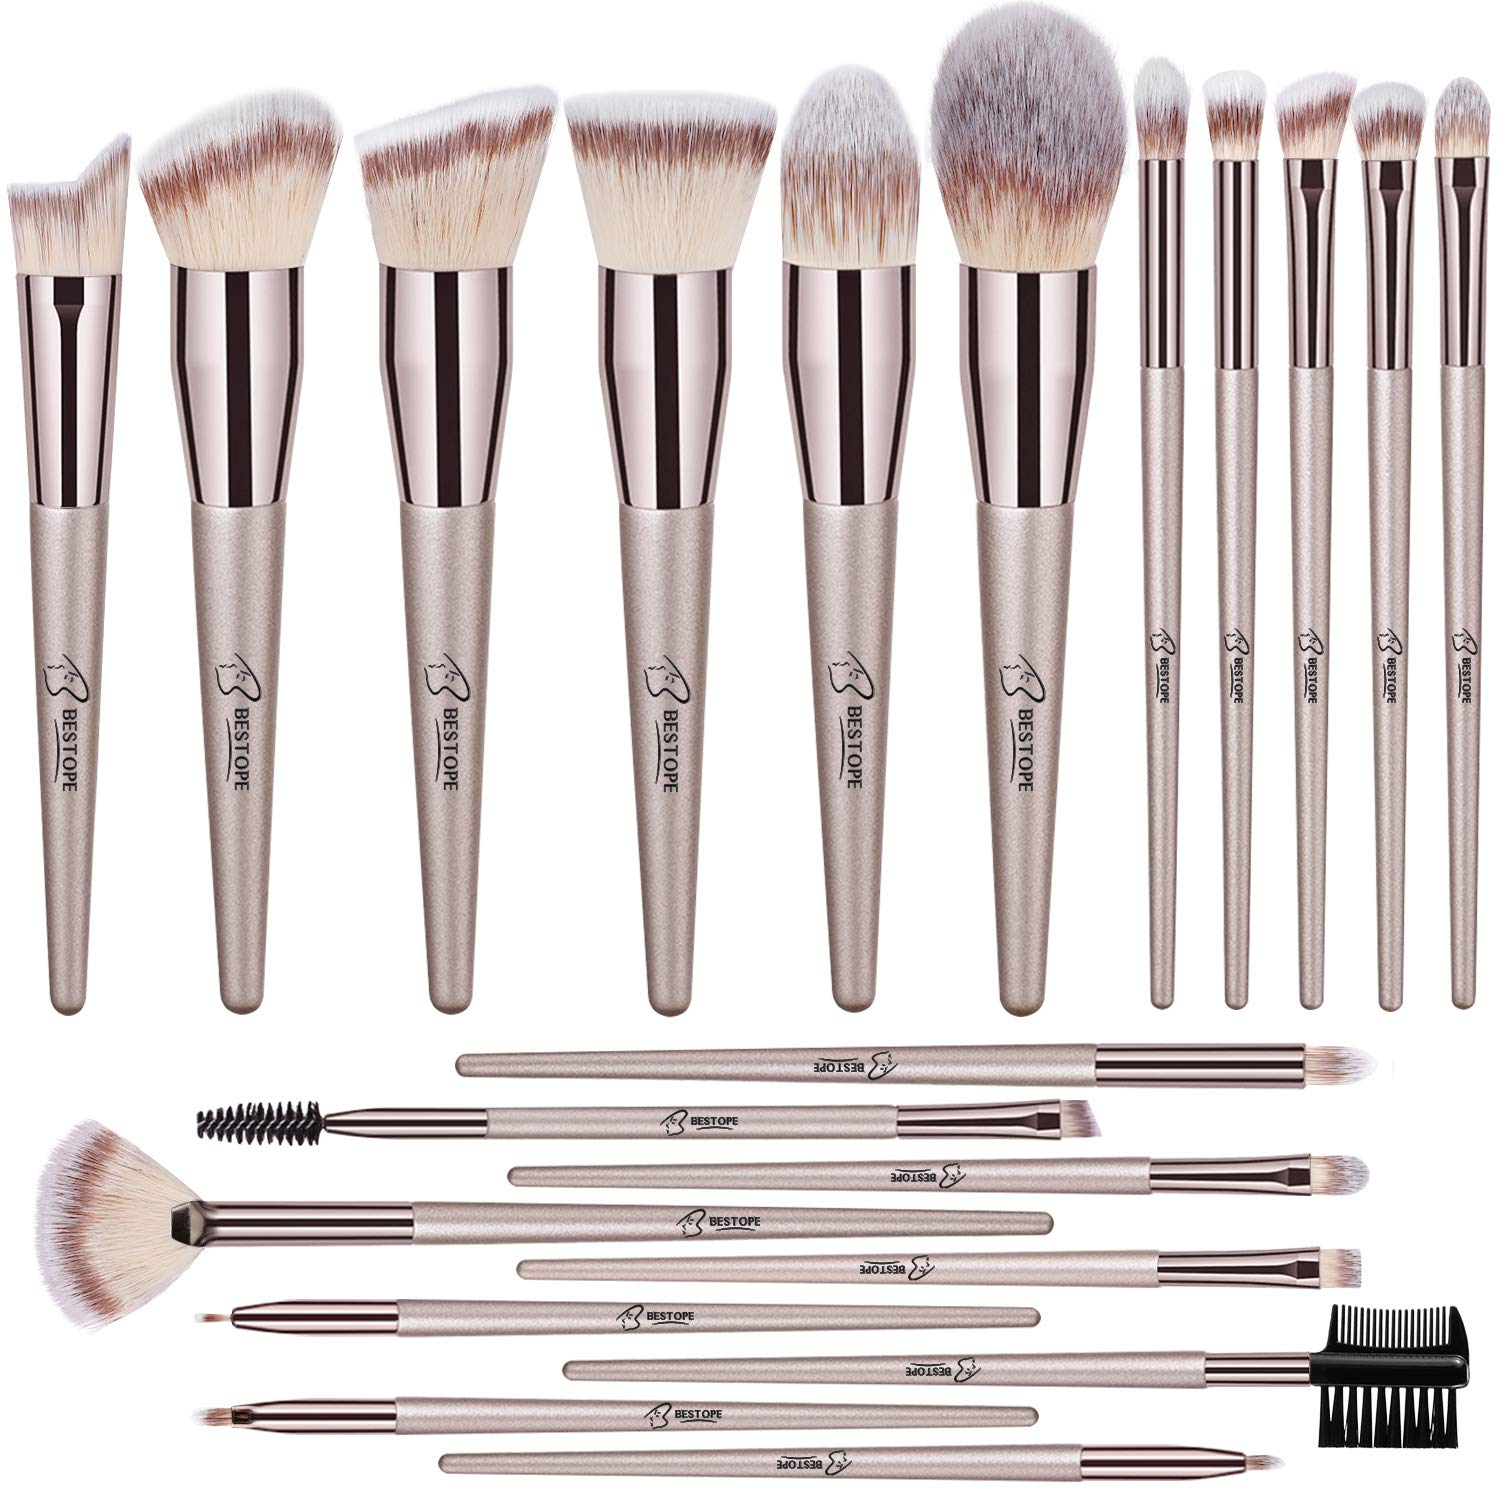 3. BESTOPE 20 PCs Makeup Brushes